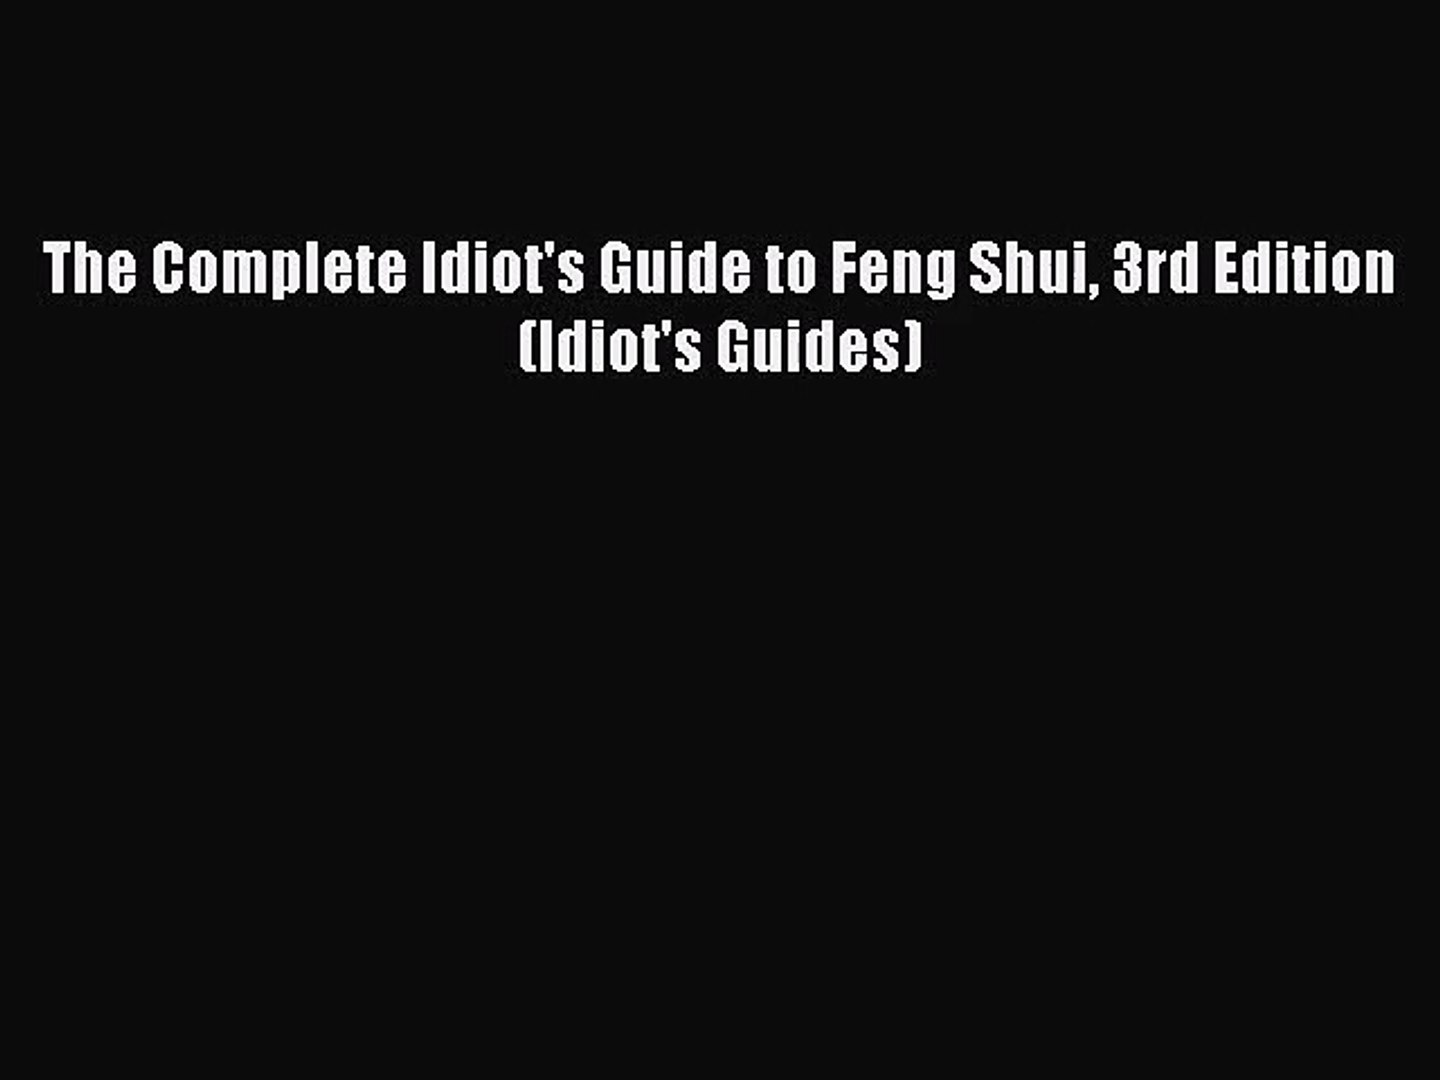 The Complete Idiots Guide to Feng Shui (3rd Edition) (Idiots Guides)